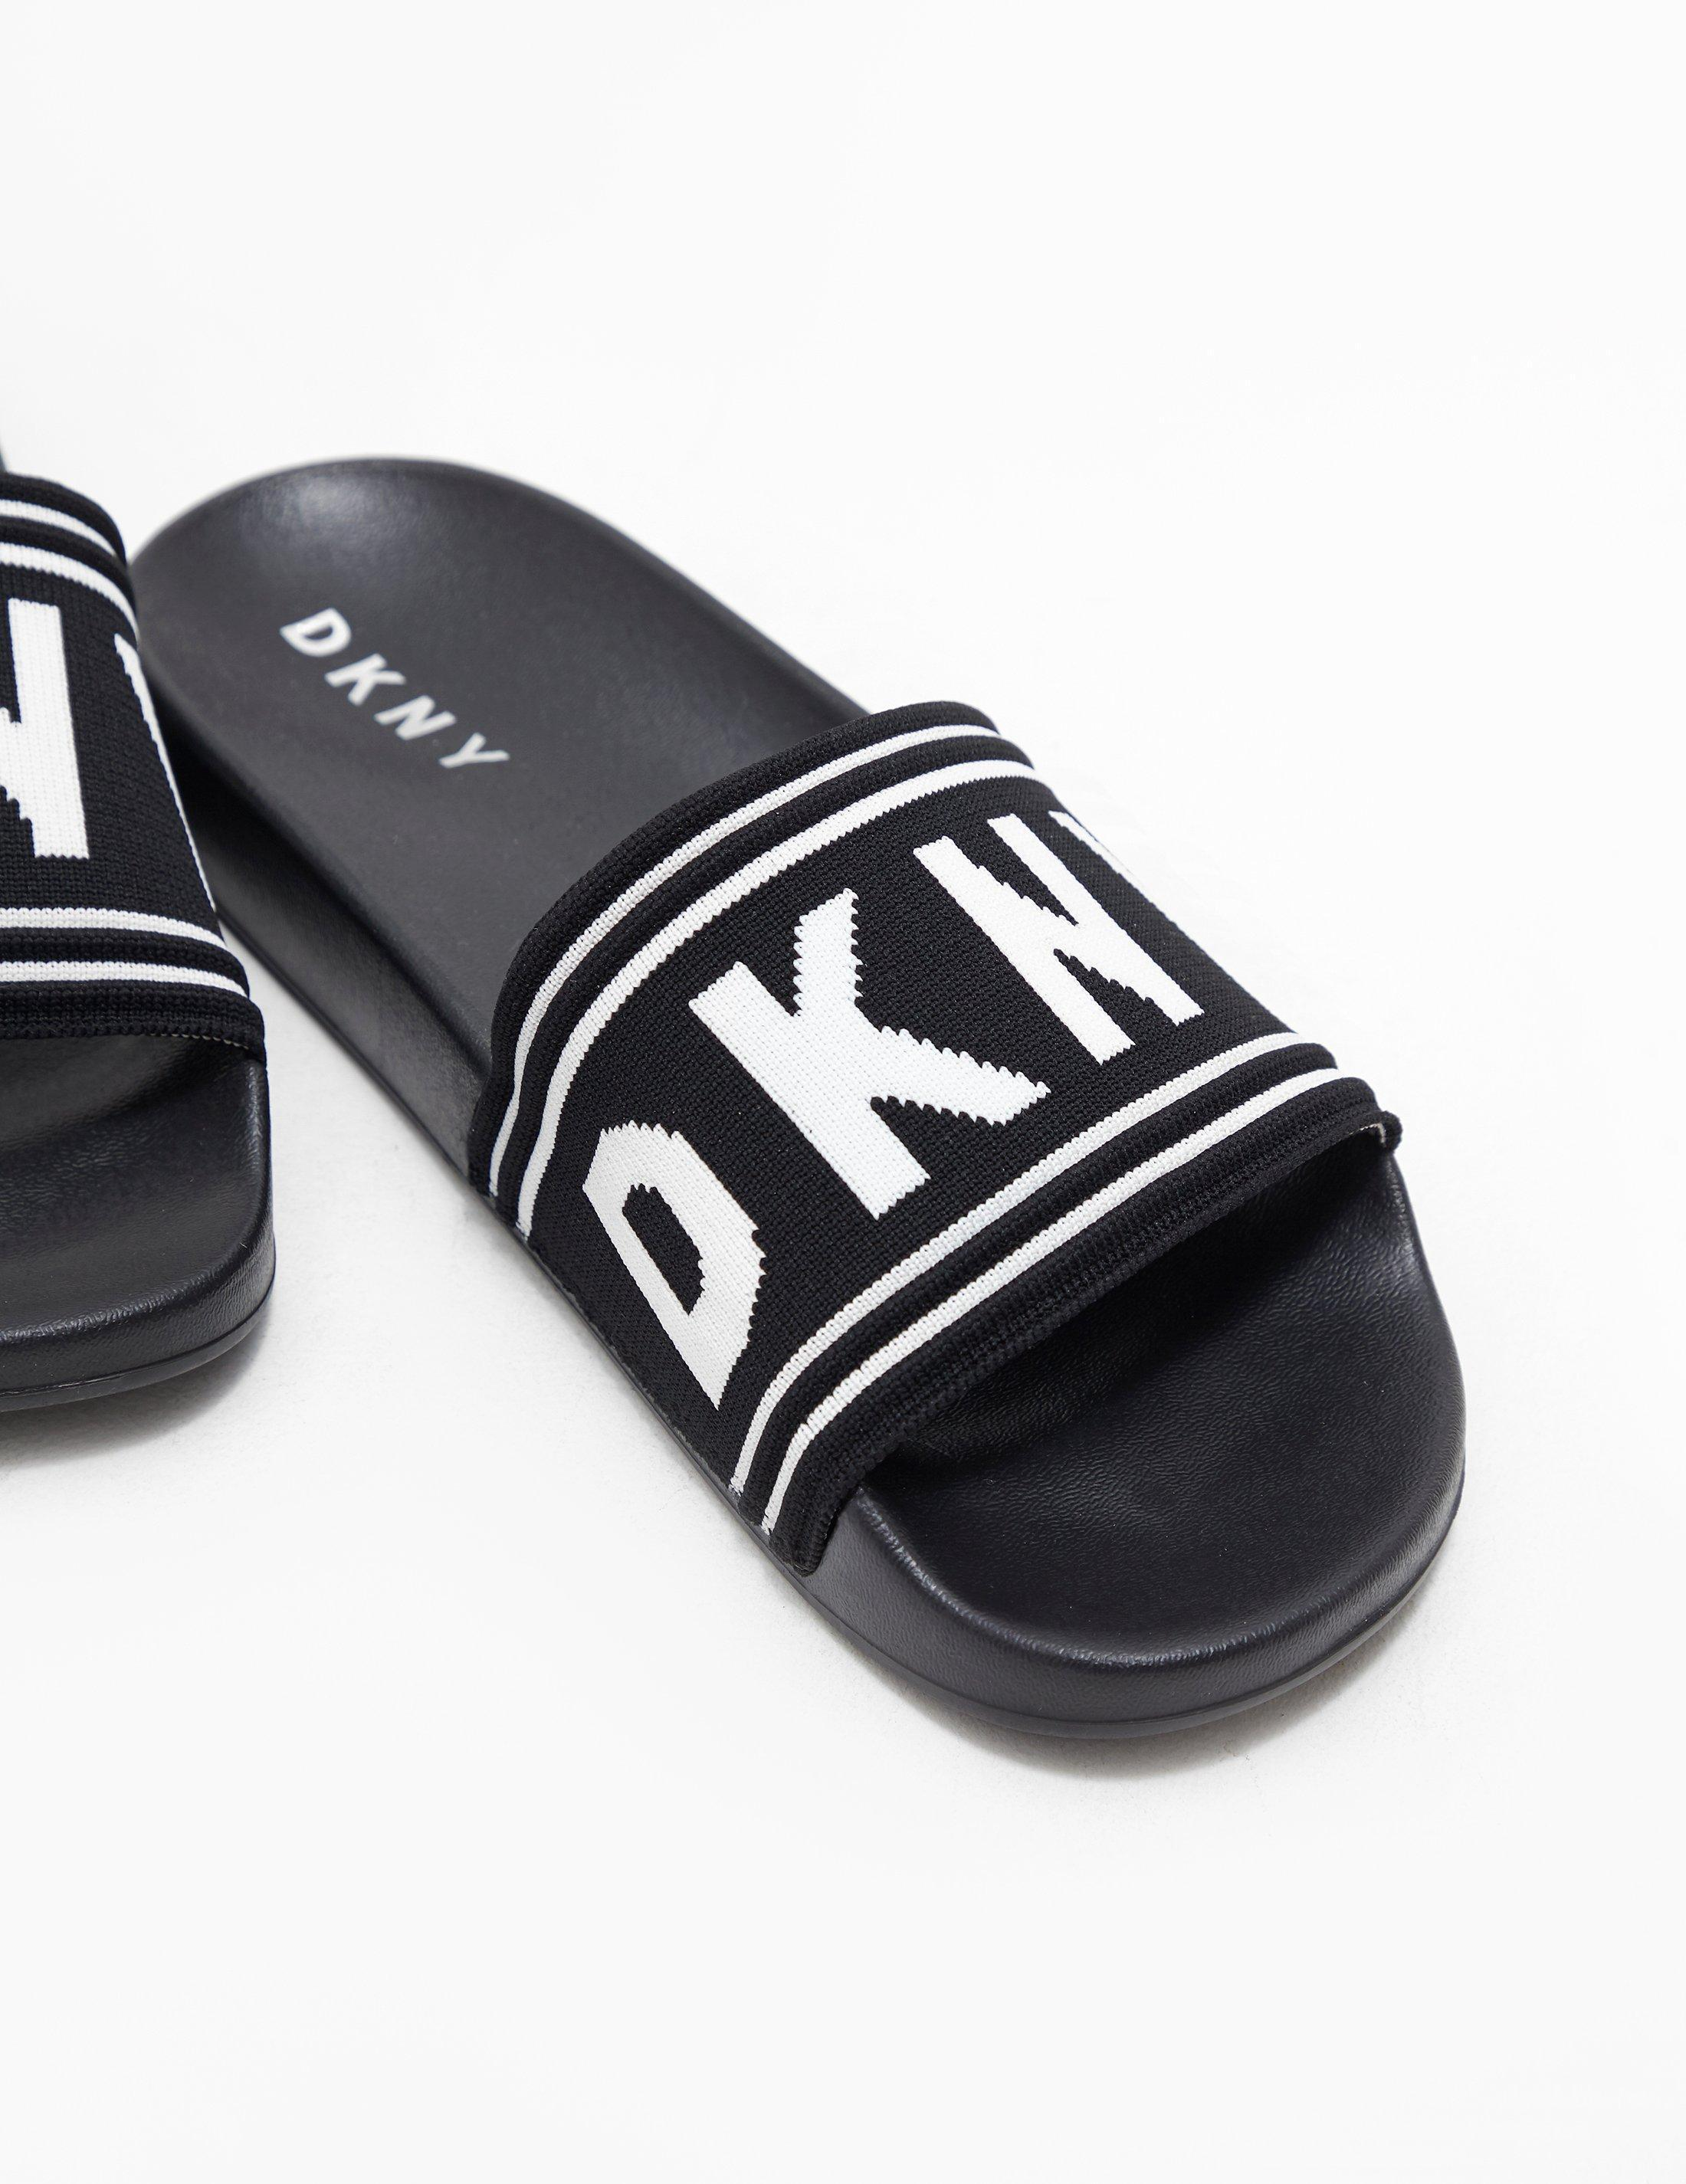 DKNY Sandals in Black - Lyst